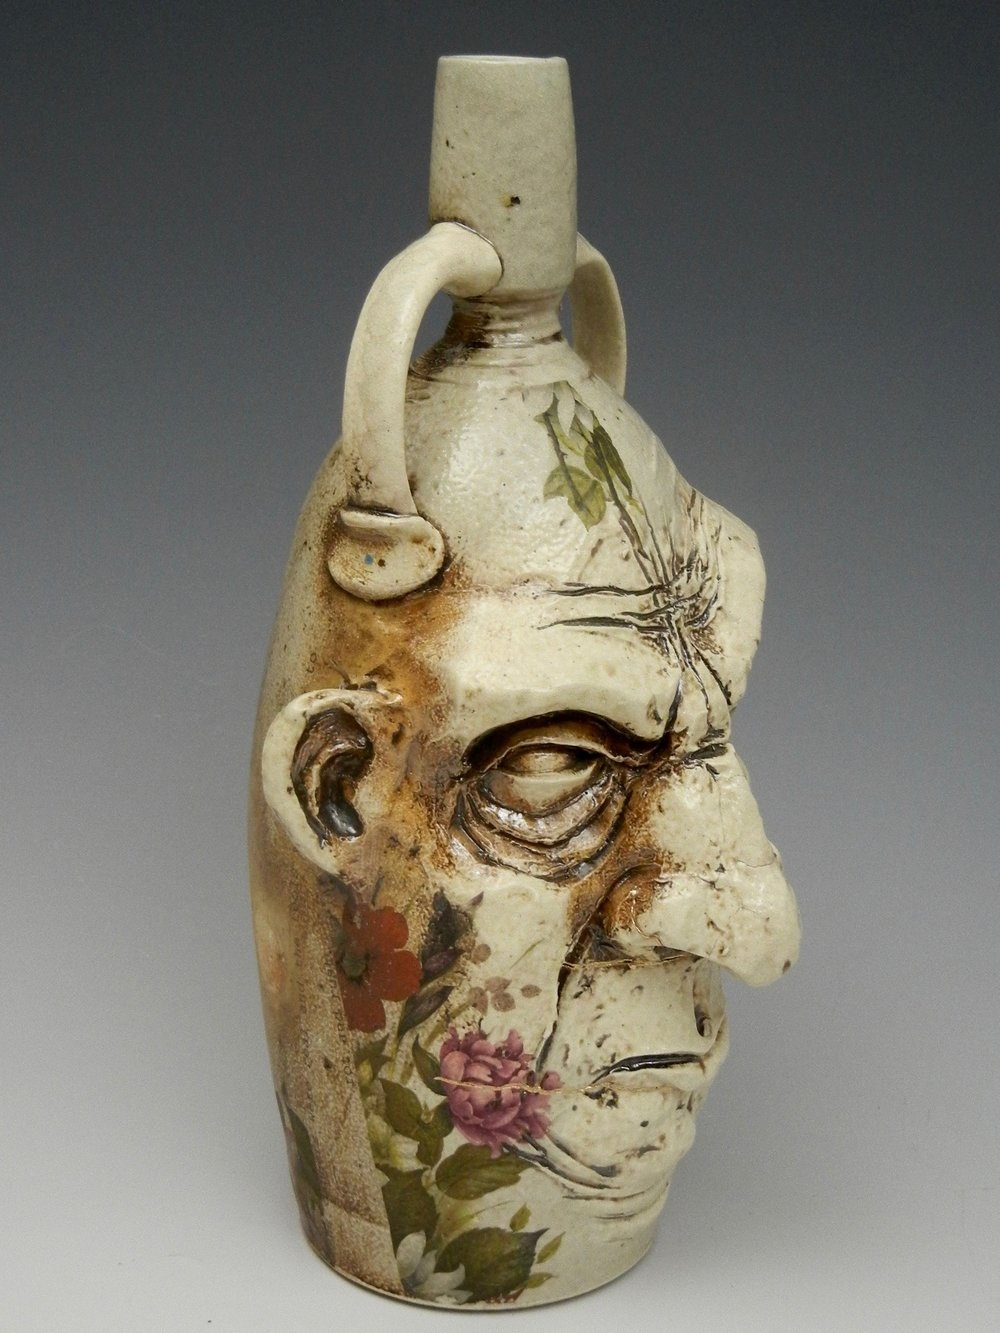 Lorenz Pottery, handmade, ceramics, pottery, folk pottery, wood fired, soda fired, jug, face jug, bottle, ugly jug